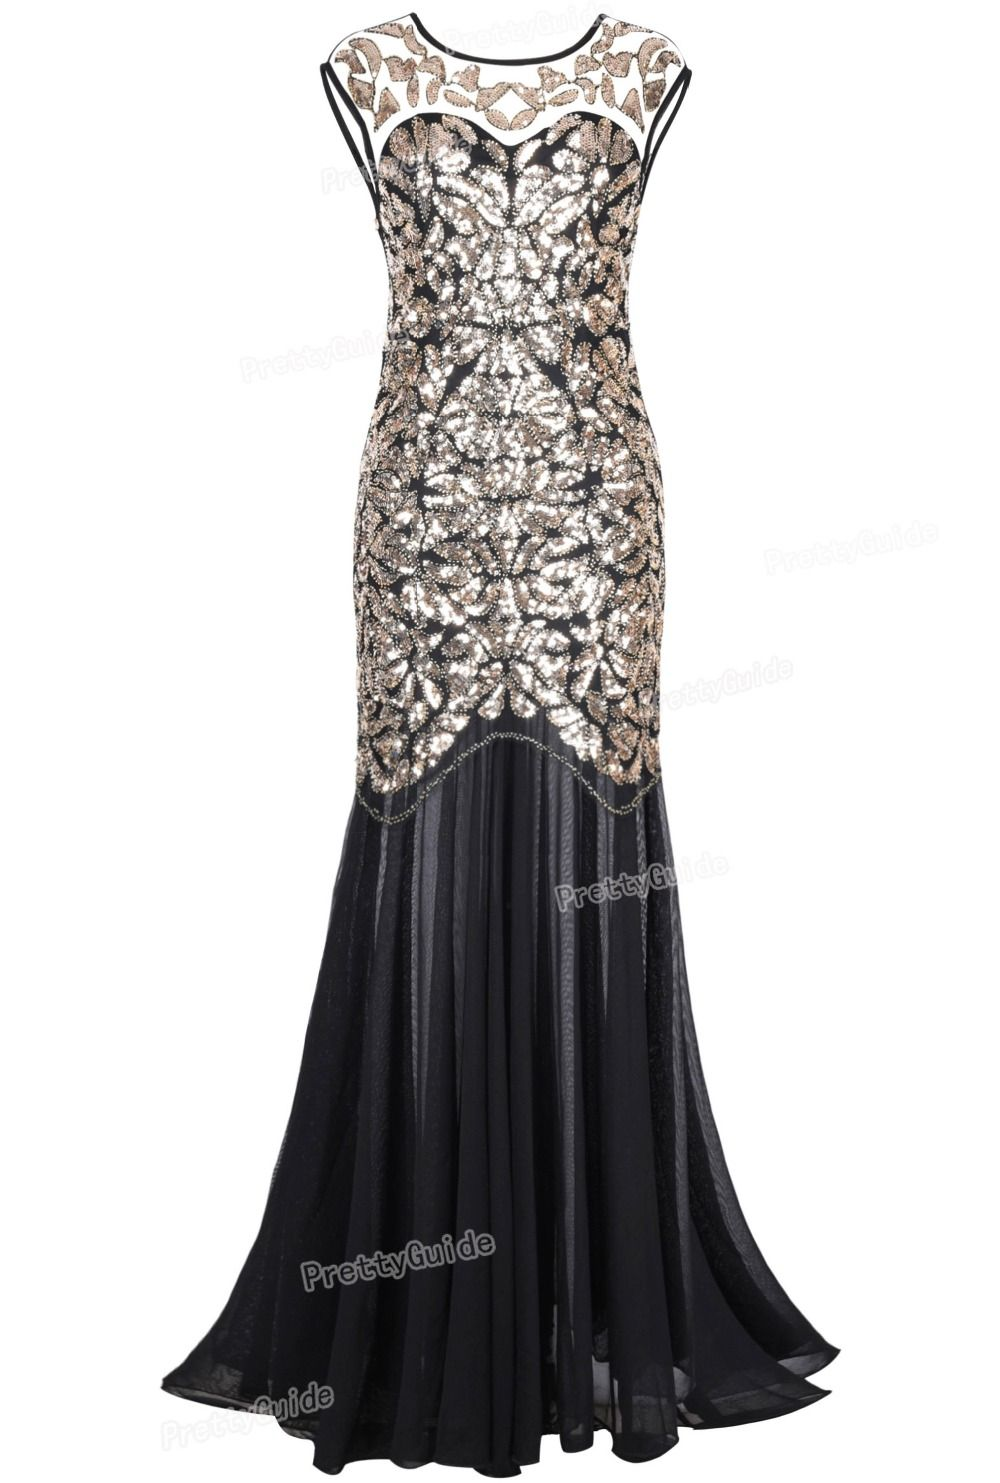 Sale for prettyguide women s s black sequin gatsby floor length